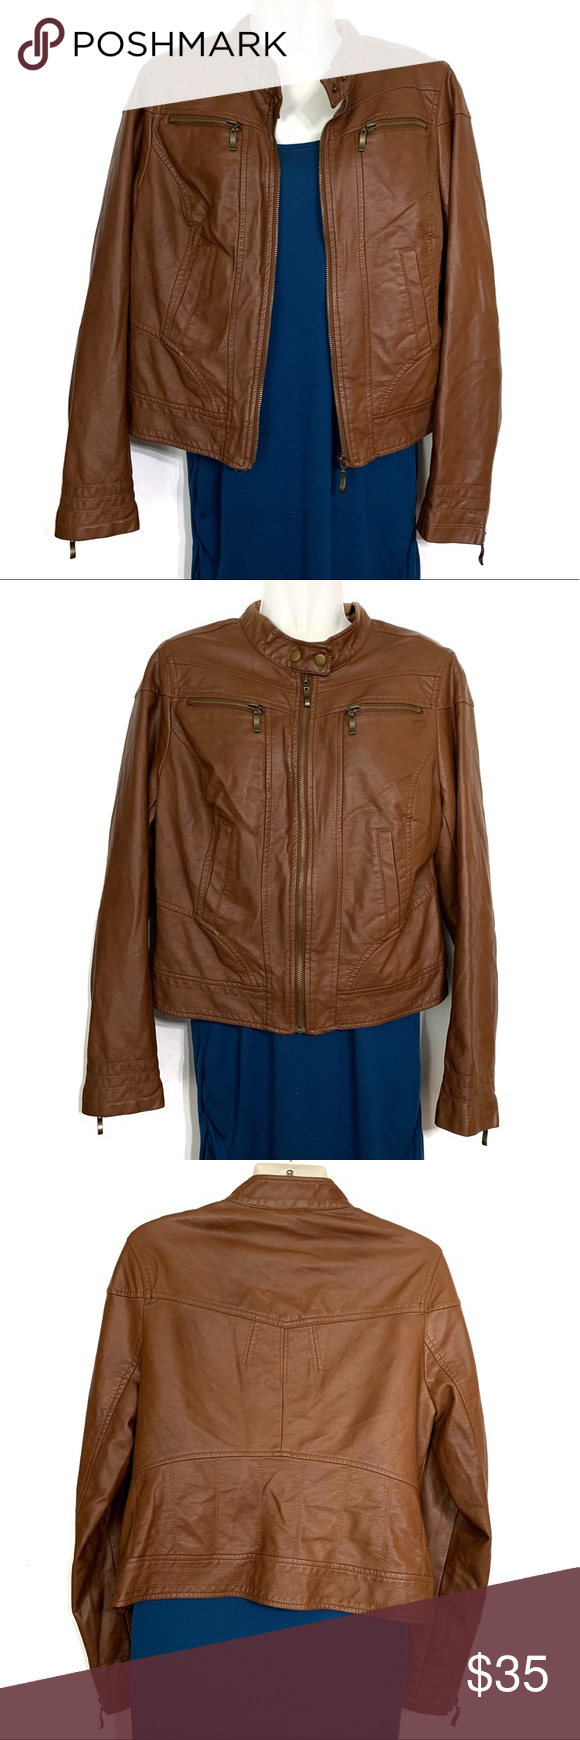 American Rag Brown Faux Leather Jacket Large Brown faux